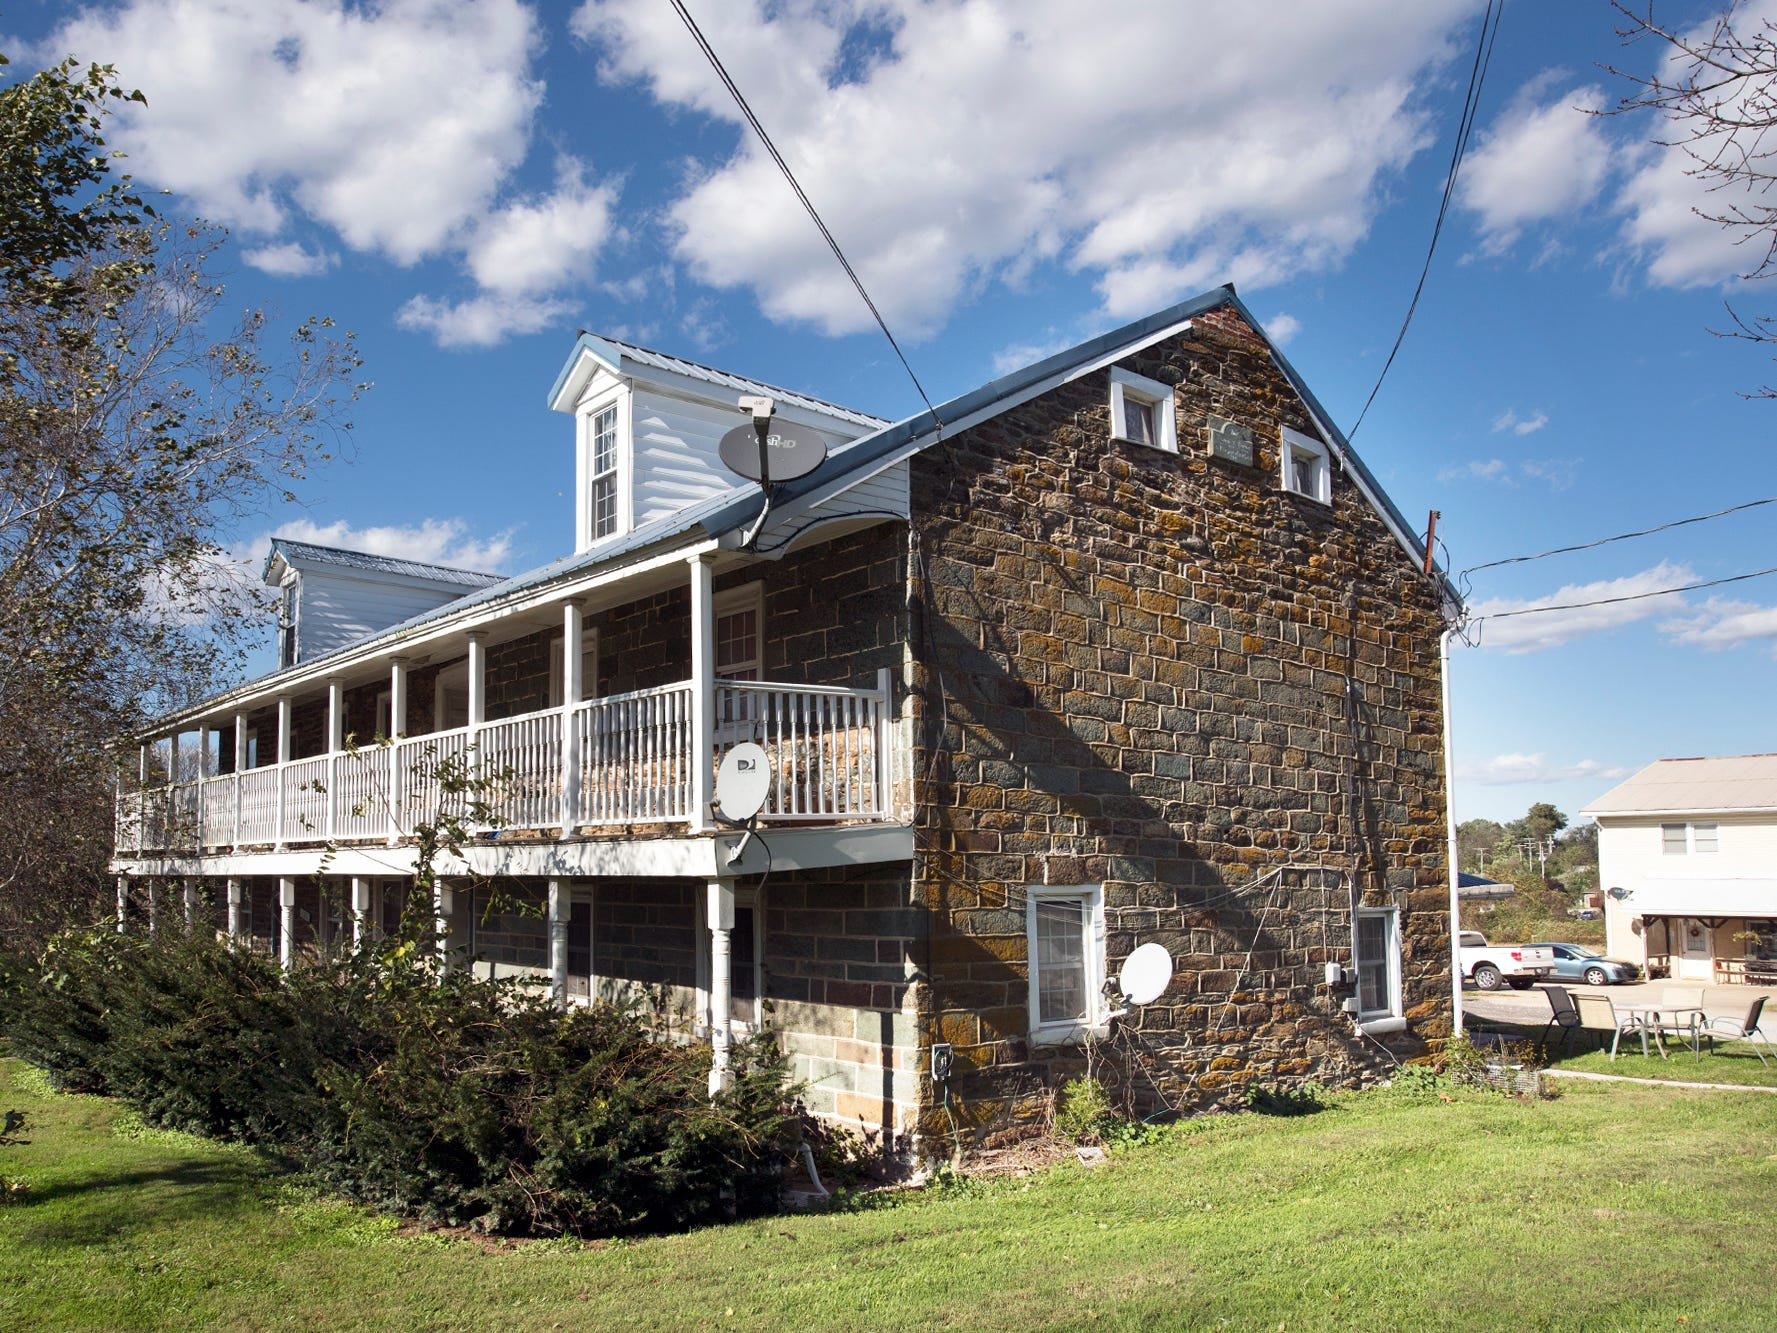 Gray Goose Manor is a complex of buildings in Springfield Township along the Susquehanna Trail in southern York County. It is comprised of a main stone house, built in 1798, and a barn that make up seven apartments. The complex on 2.3 is for sale for $425,000.